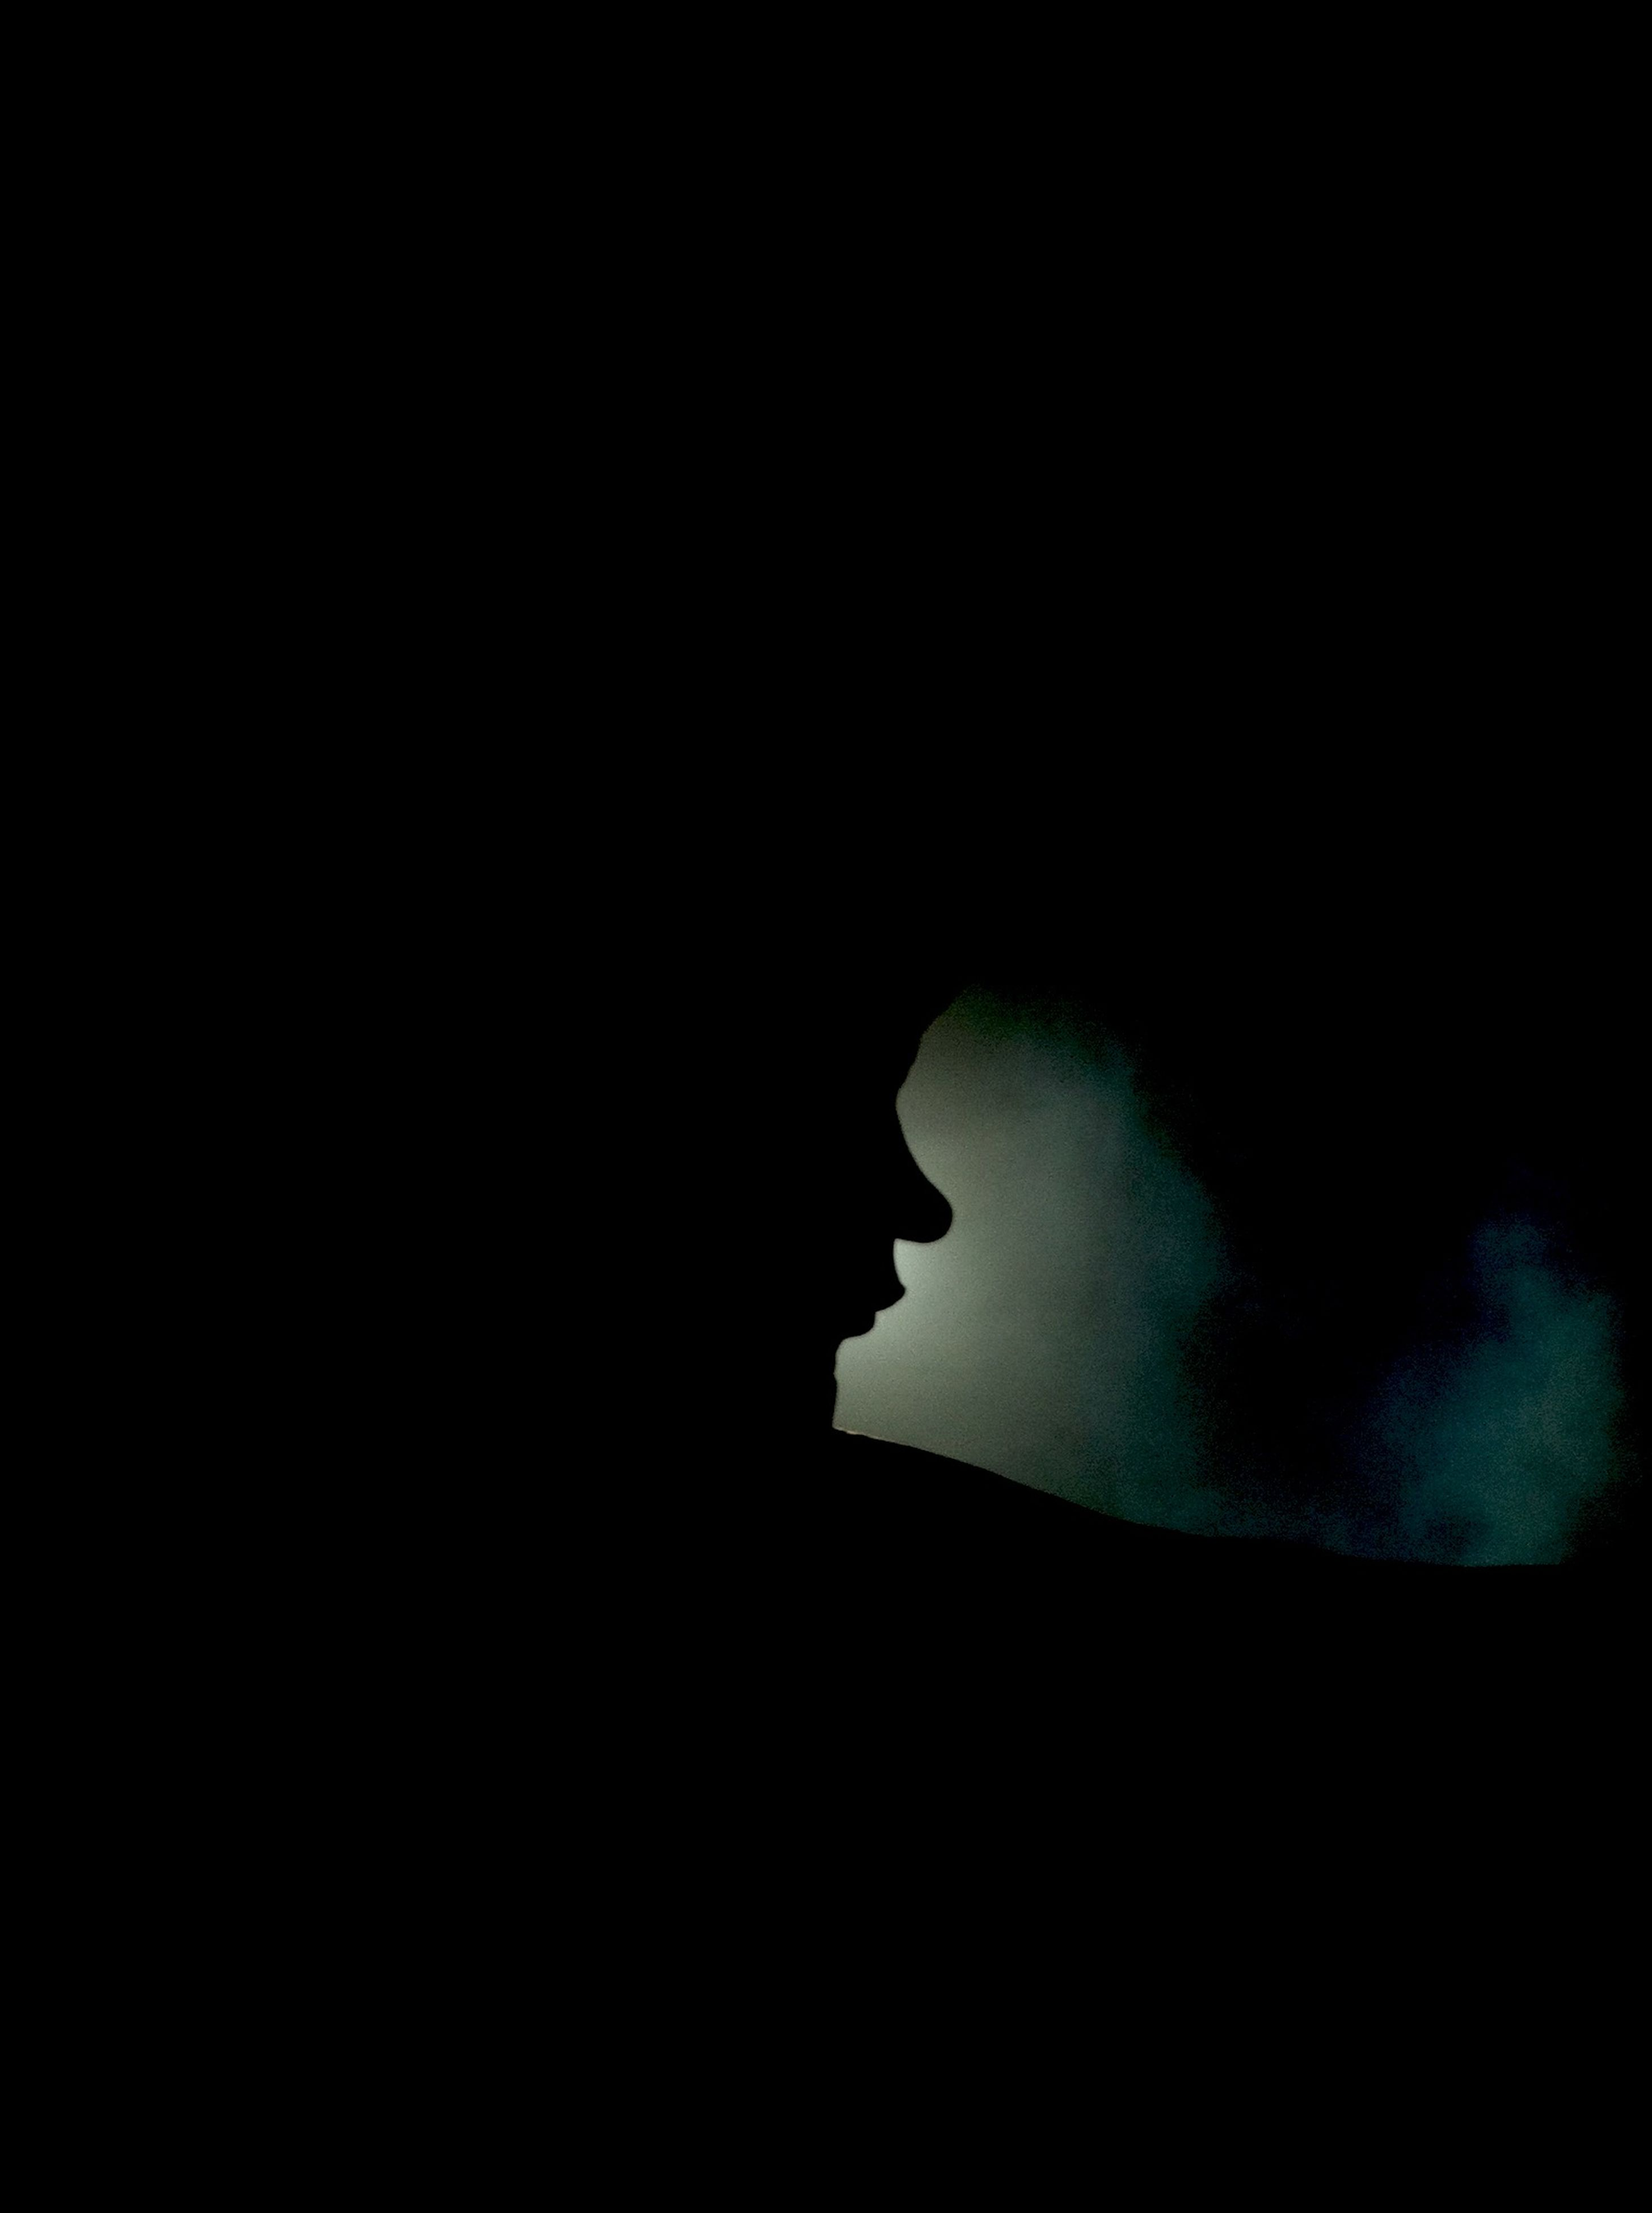 dark, copy space, silhouette, night, indoors, low angle view, darkroom, darkness, outline, one person, mystery, light - natural phenomenon, sky, black background, moon, clear sky, tranquility, illuminated, black